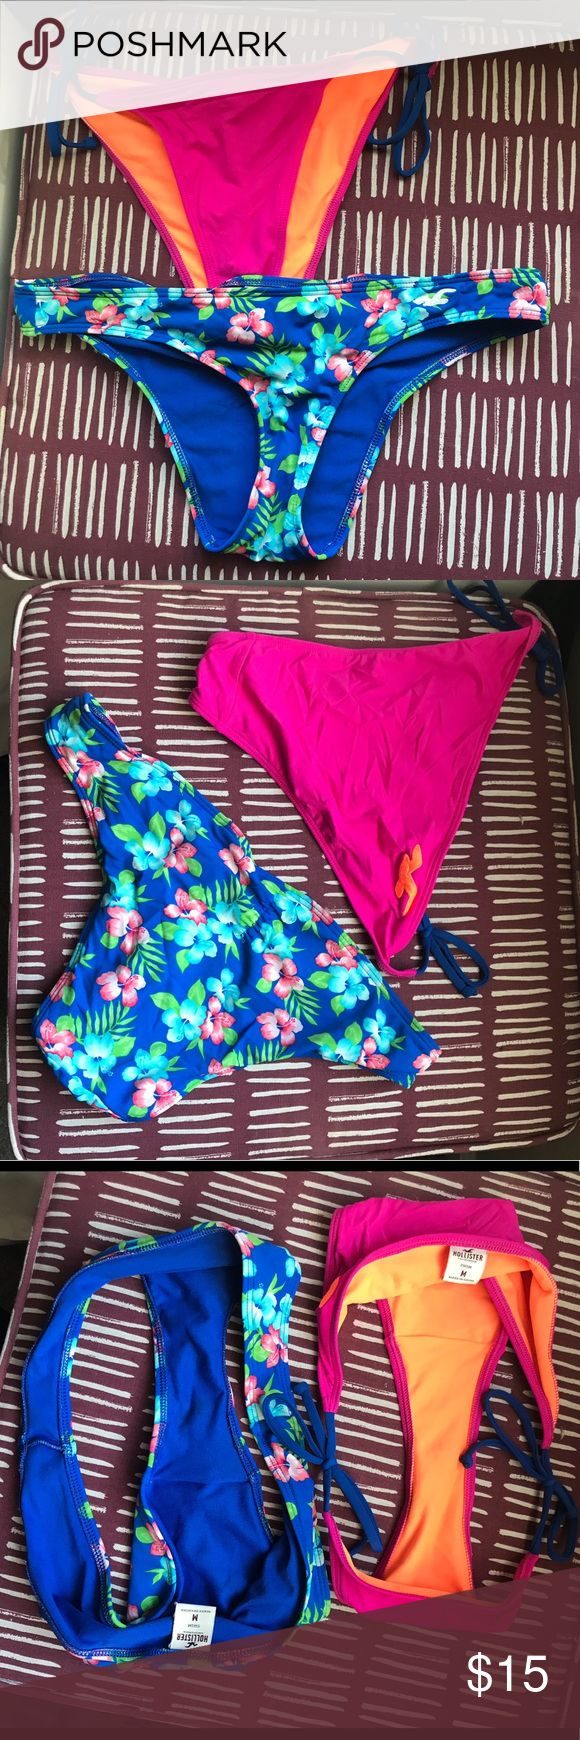 Hollister bikini bottoms 🐳🐬Top pair: size medium pink and orange bikini bottoms with blue string. Never worn. Bottom pair: size medium floral mix worn once. Both in absolute perfect condition and bought brand new. 🐳🐬 Hollister Swim Bikinis